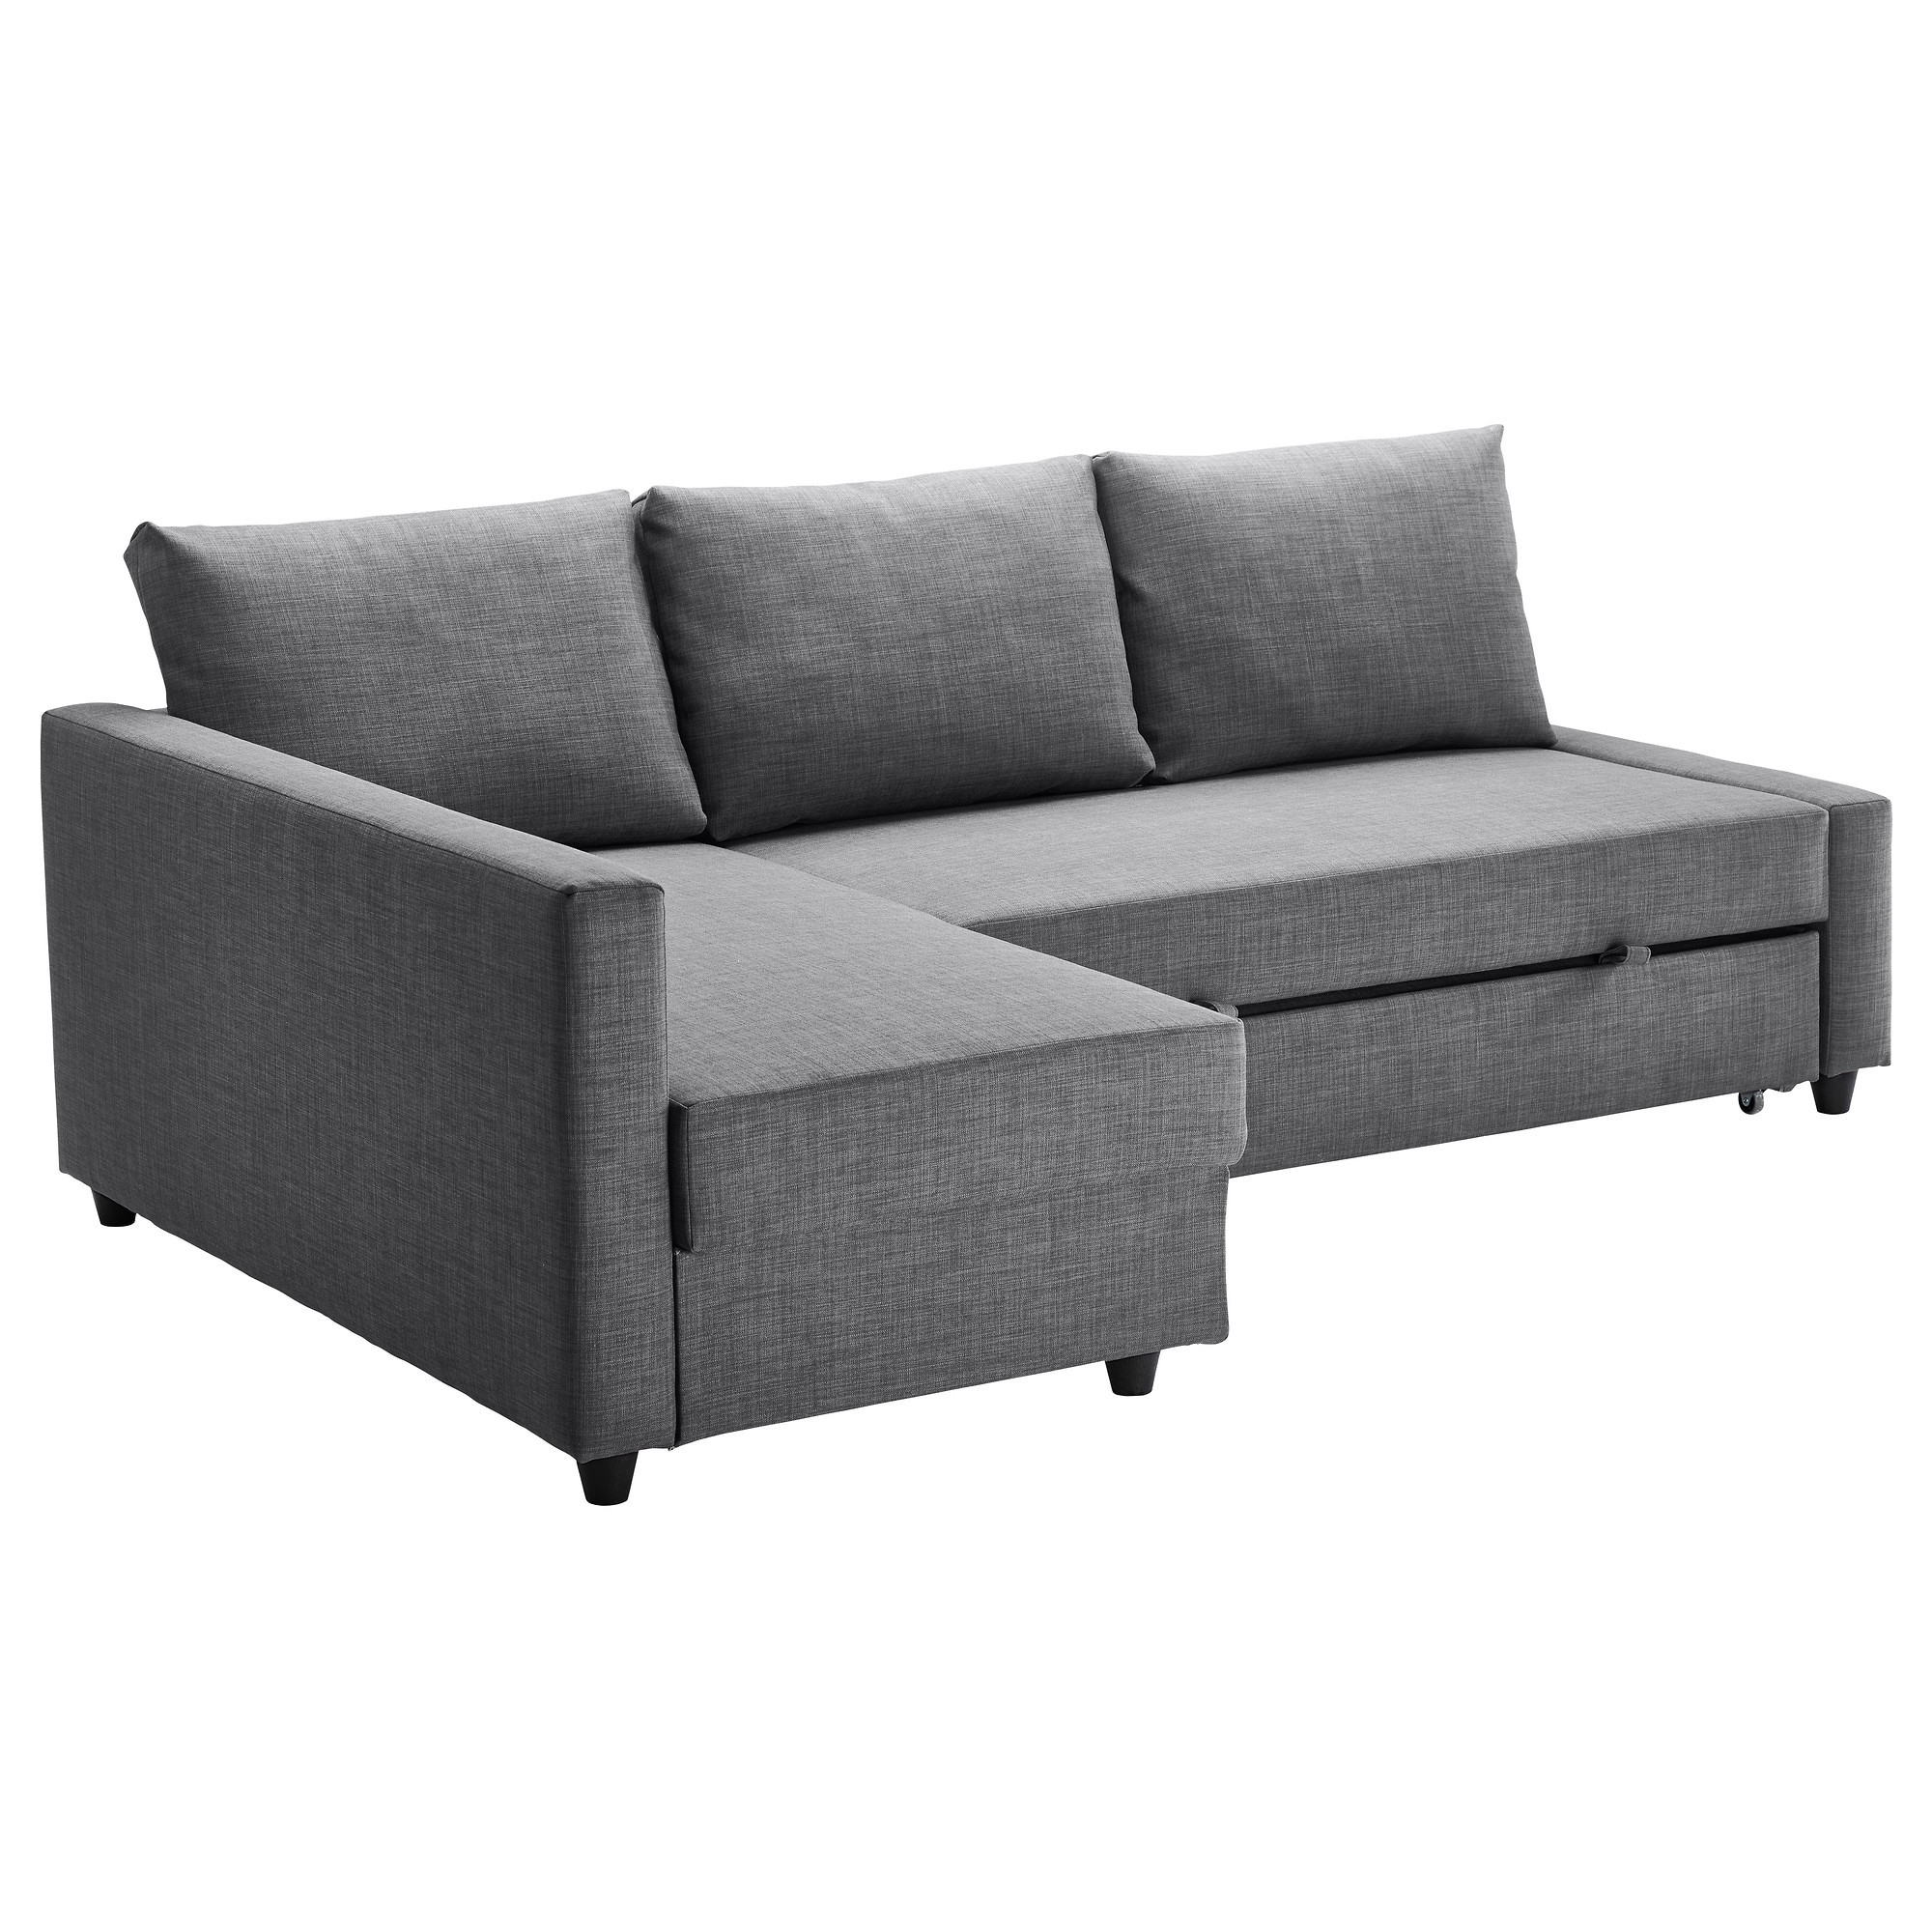 Fashionable Awesome Chaise Lounge Sleeper – Buildsimplehome Inside Lucy Dark Grey 2 Piece Sleeper Sectionals With Raf Chaise (Gallery 9 of 20)